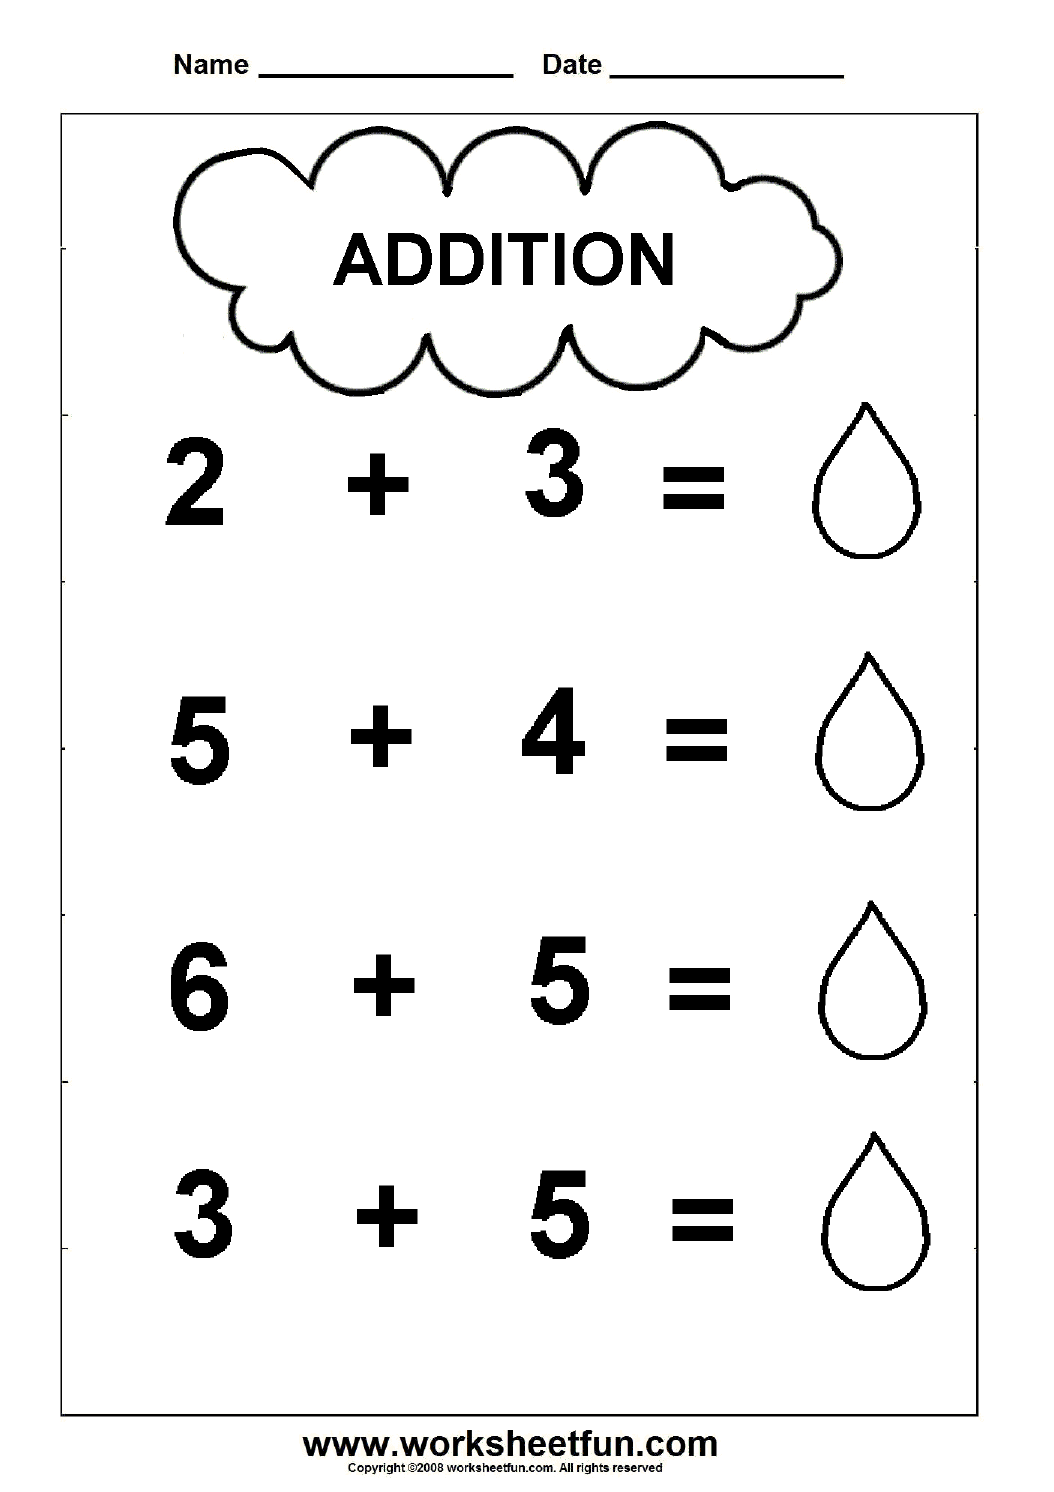 Worksheets Additions Worksheets addition worksheets kindergarten pinterest 2 worksheets